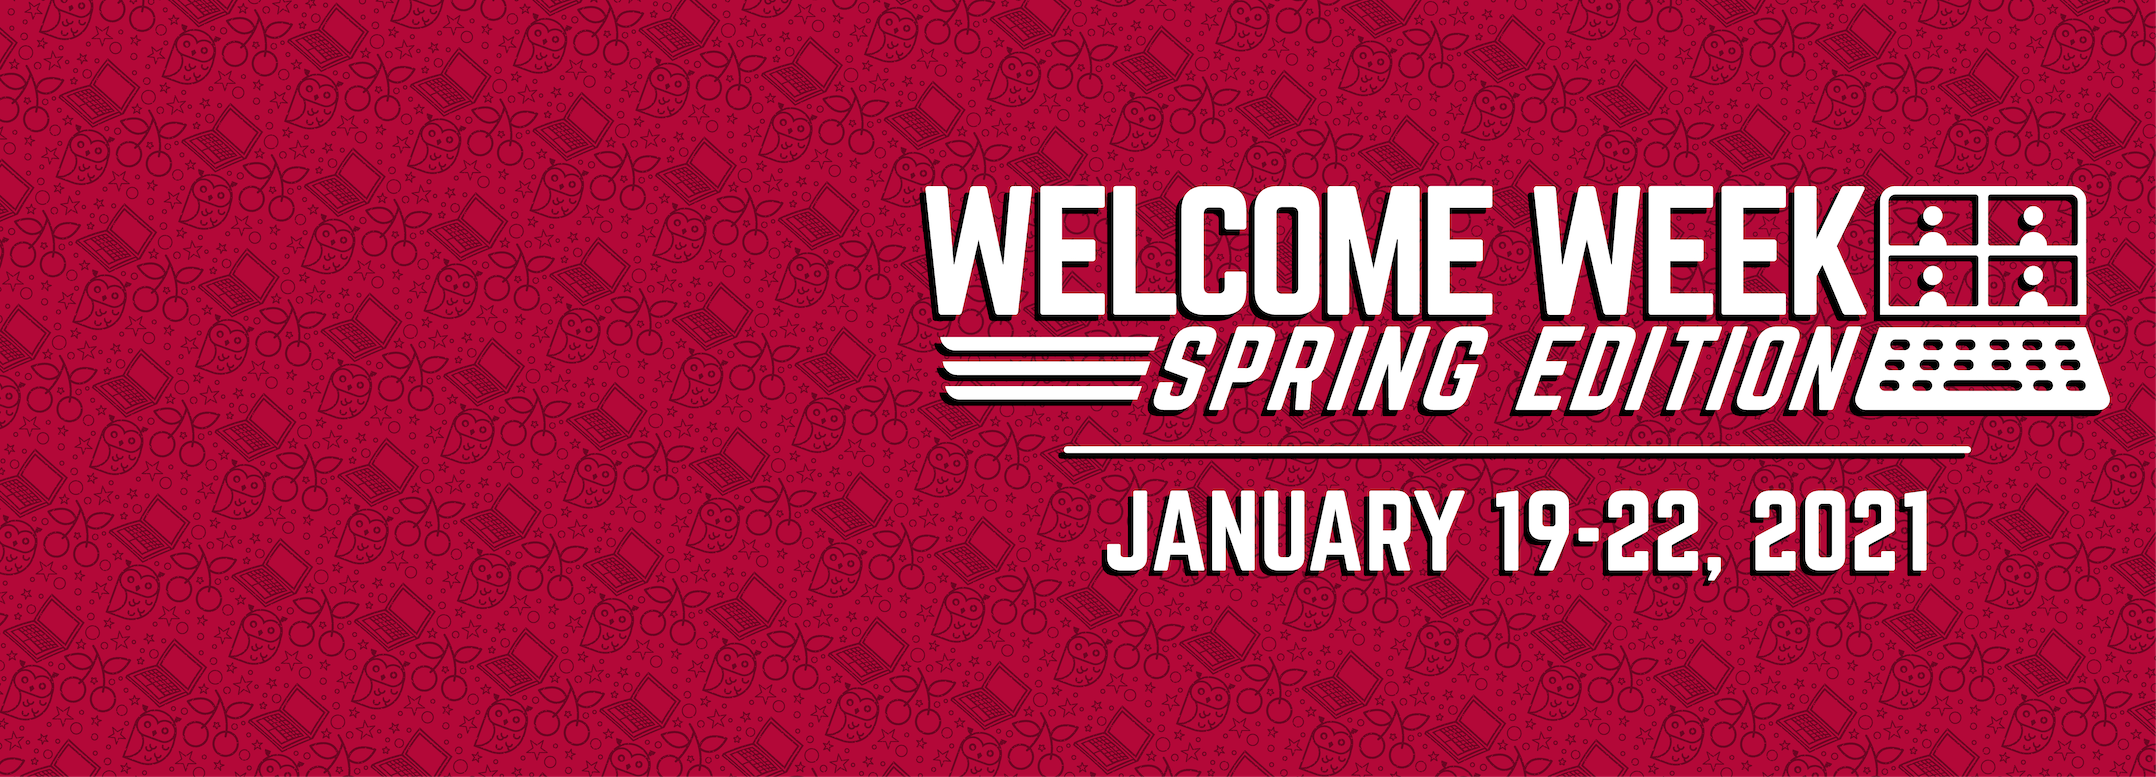 Welcome Week: Spring Edition | January 19-22, 2021